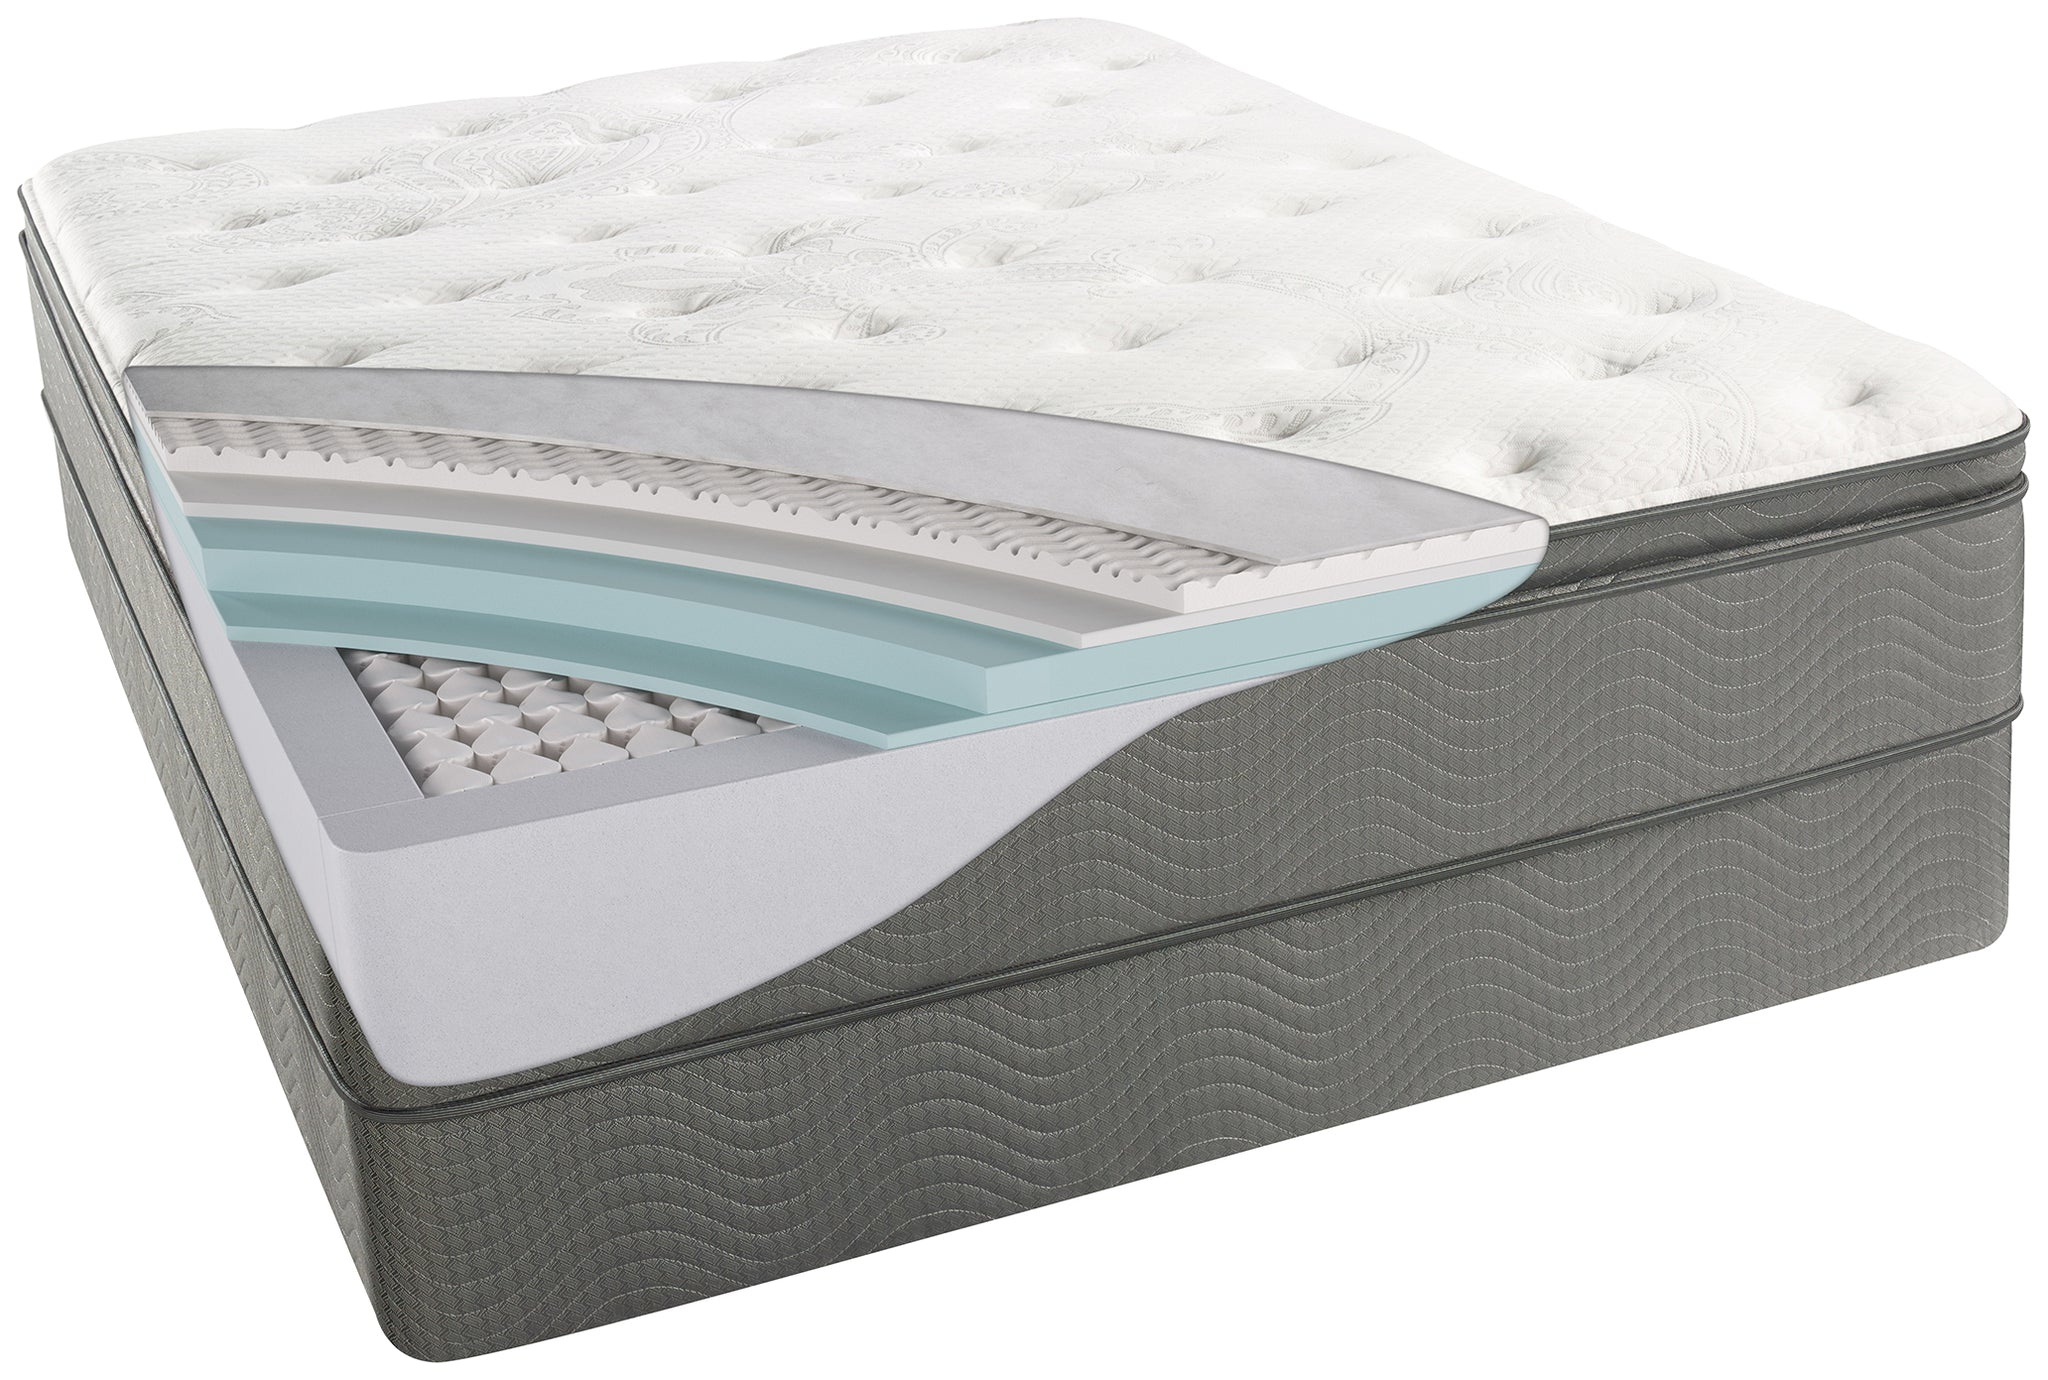 double full organic size pad topper pillow top mattress